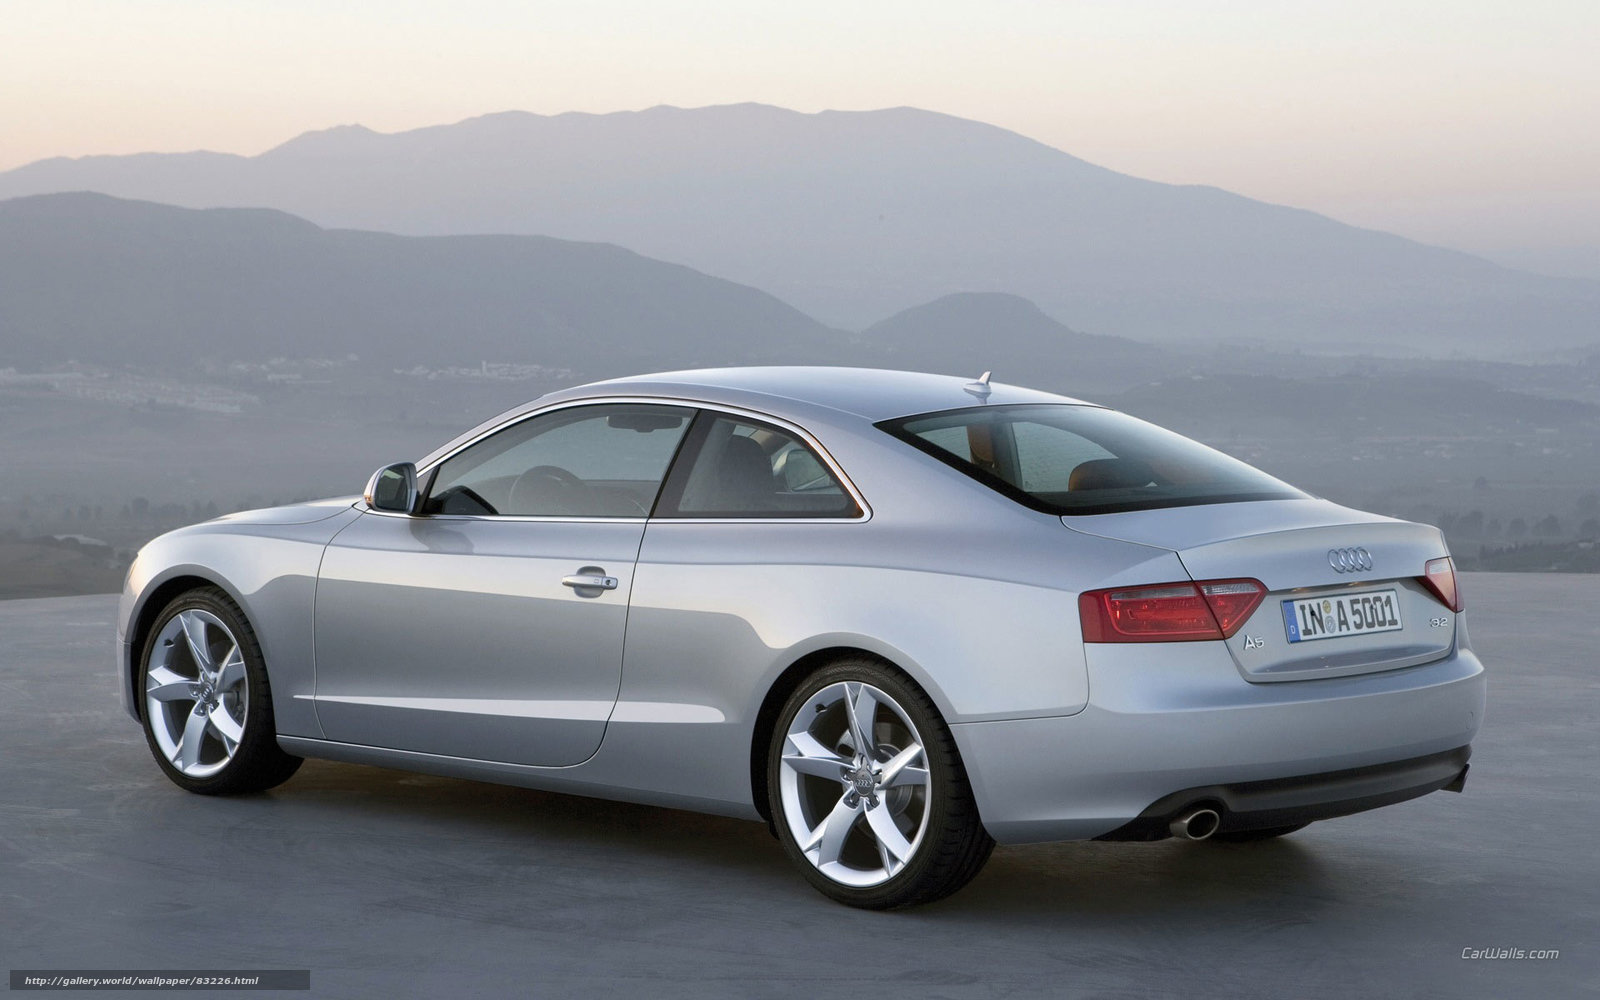 Download Wallpaper Audi A5 Auto Machines Free Desktop